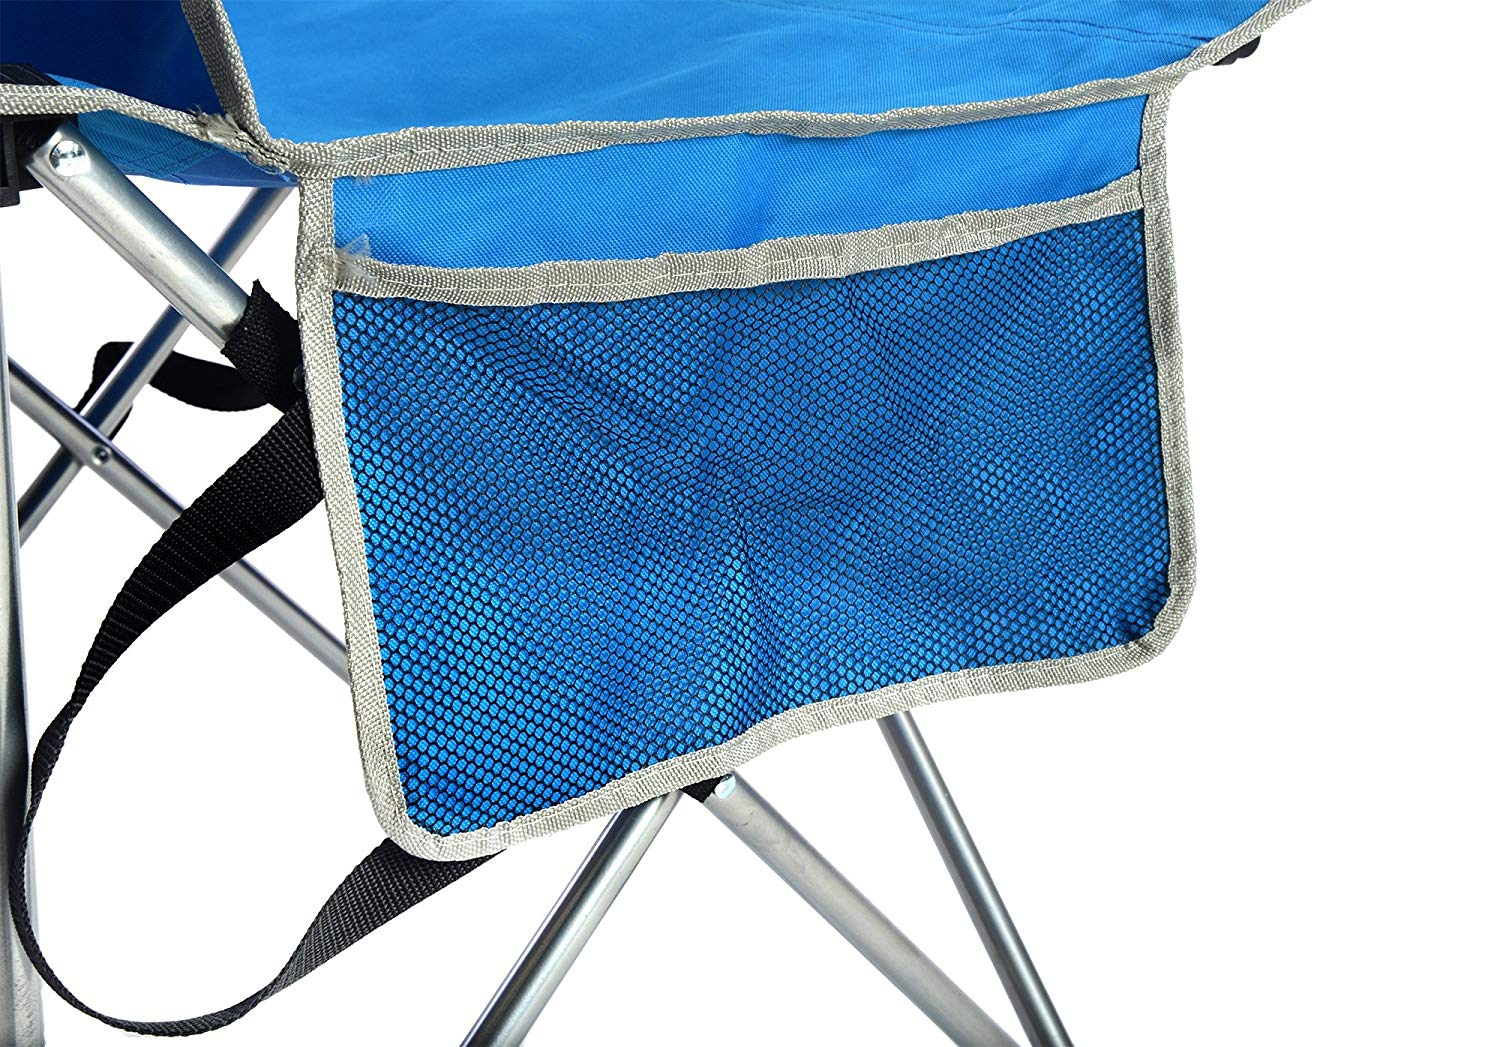 Imprinted Full Size Quad Shade Chair By Quik Shade